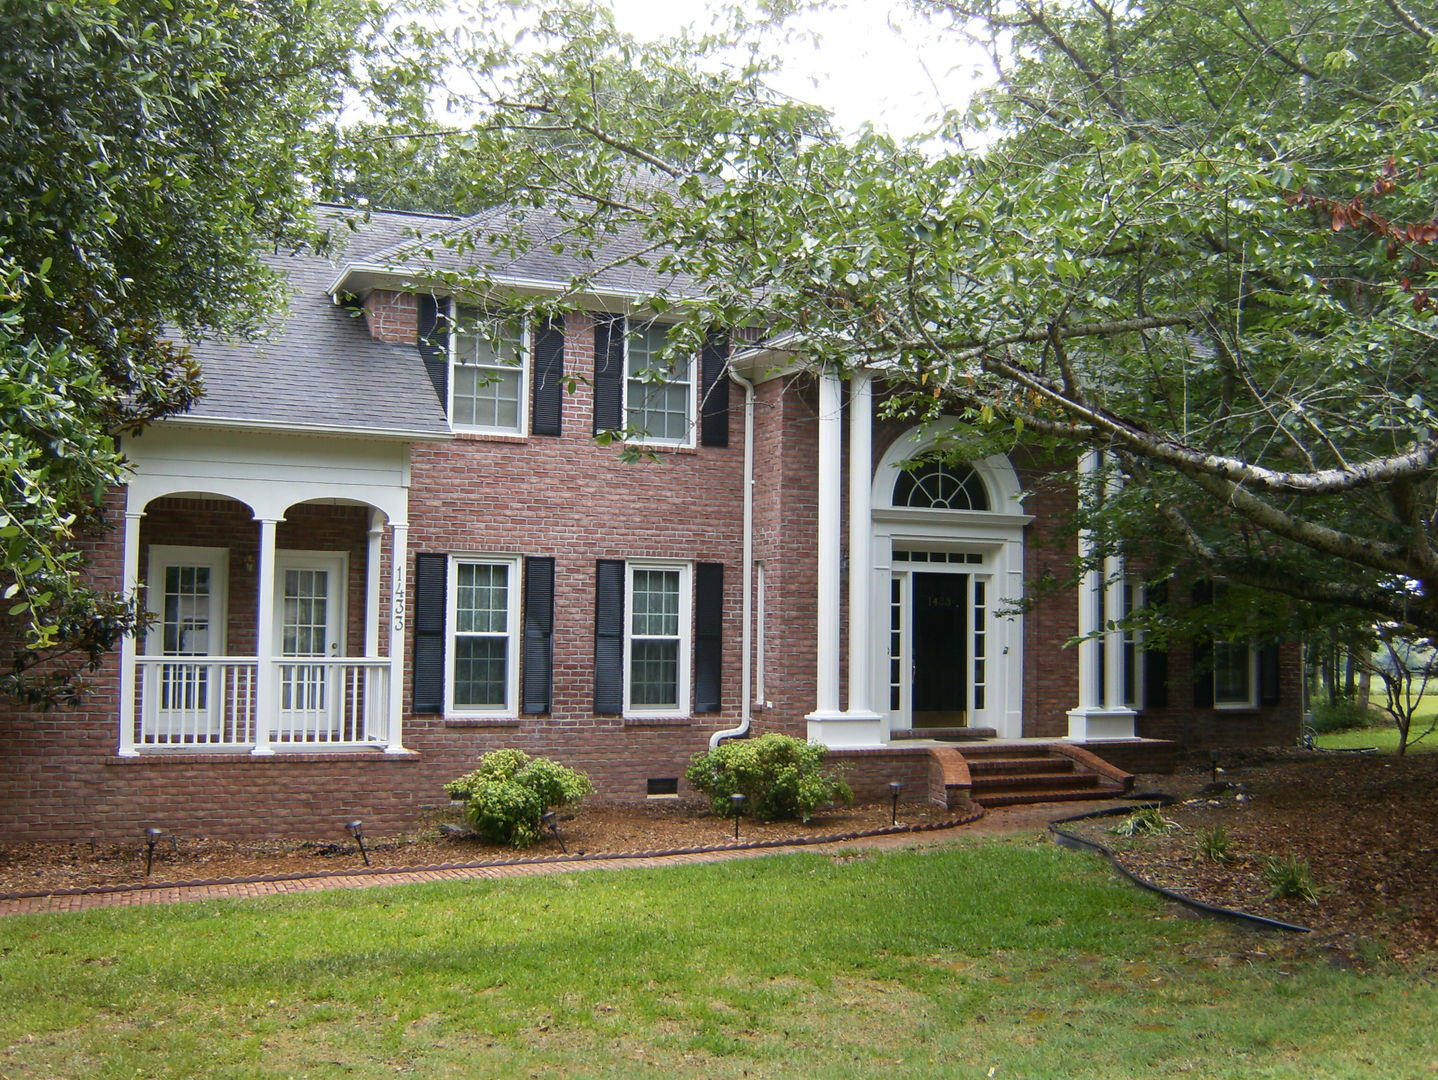 Home for rent in Wilmington, North Carolina, listed by Wilmington's Best Rentals.